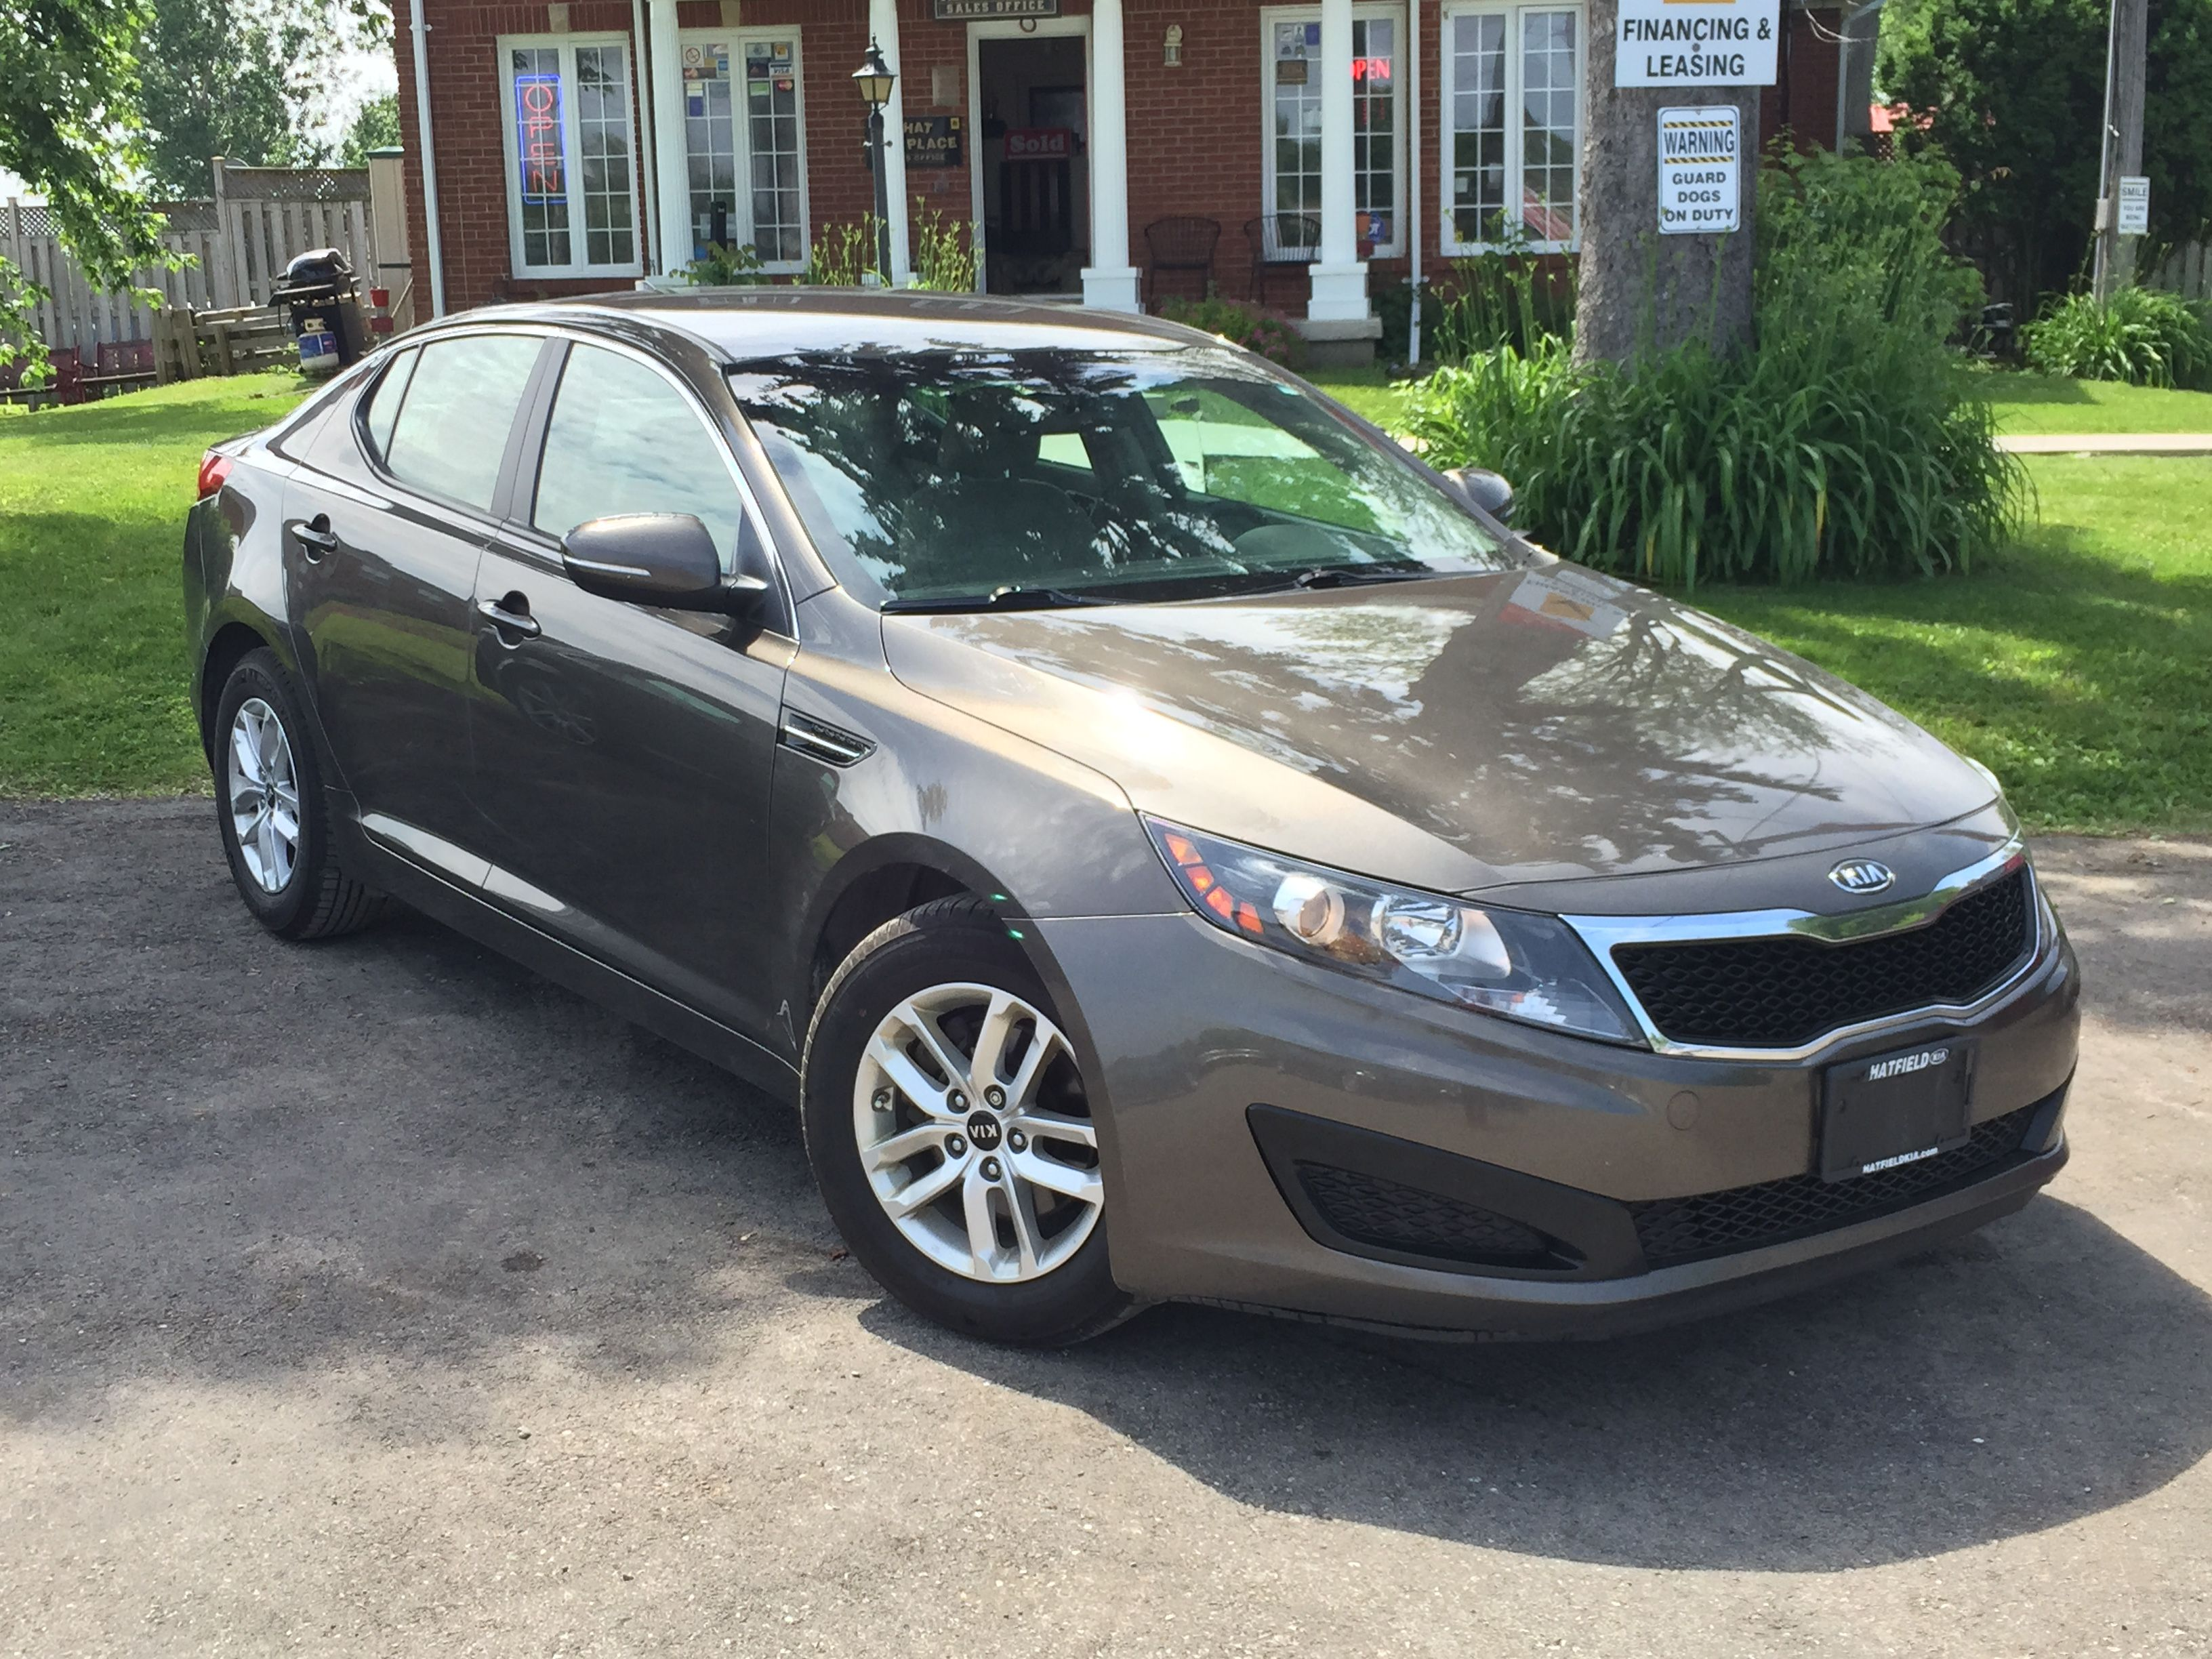 2011 KIA Optima $14 987 Drive this vehicle for 63 weekly based on 72